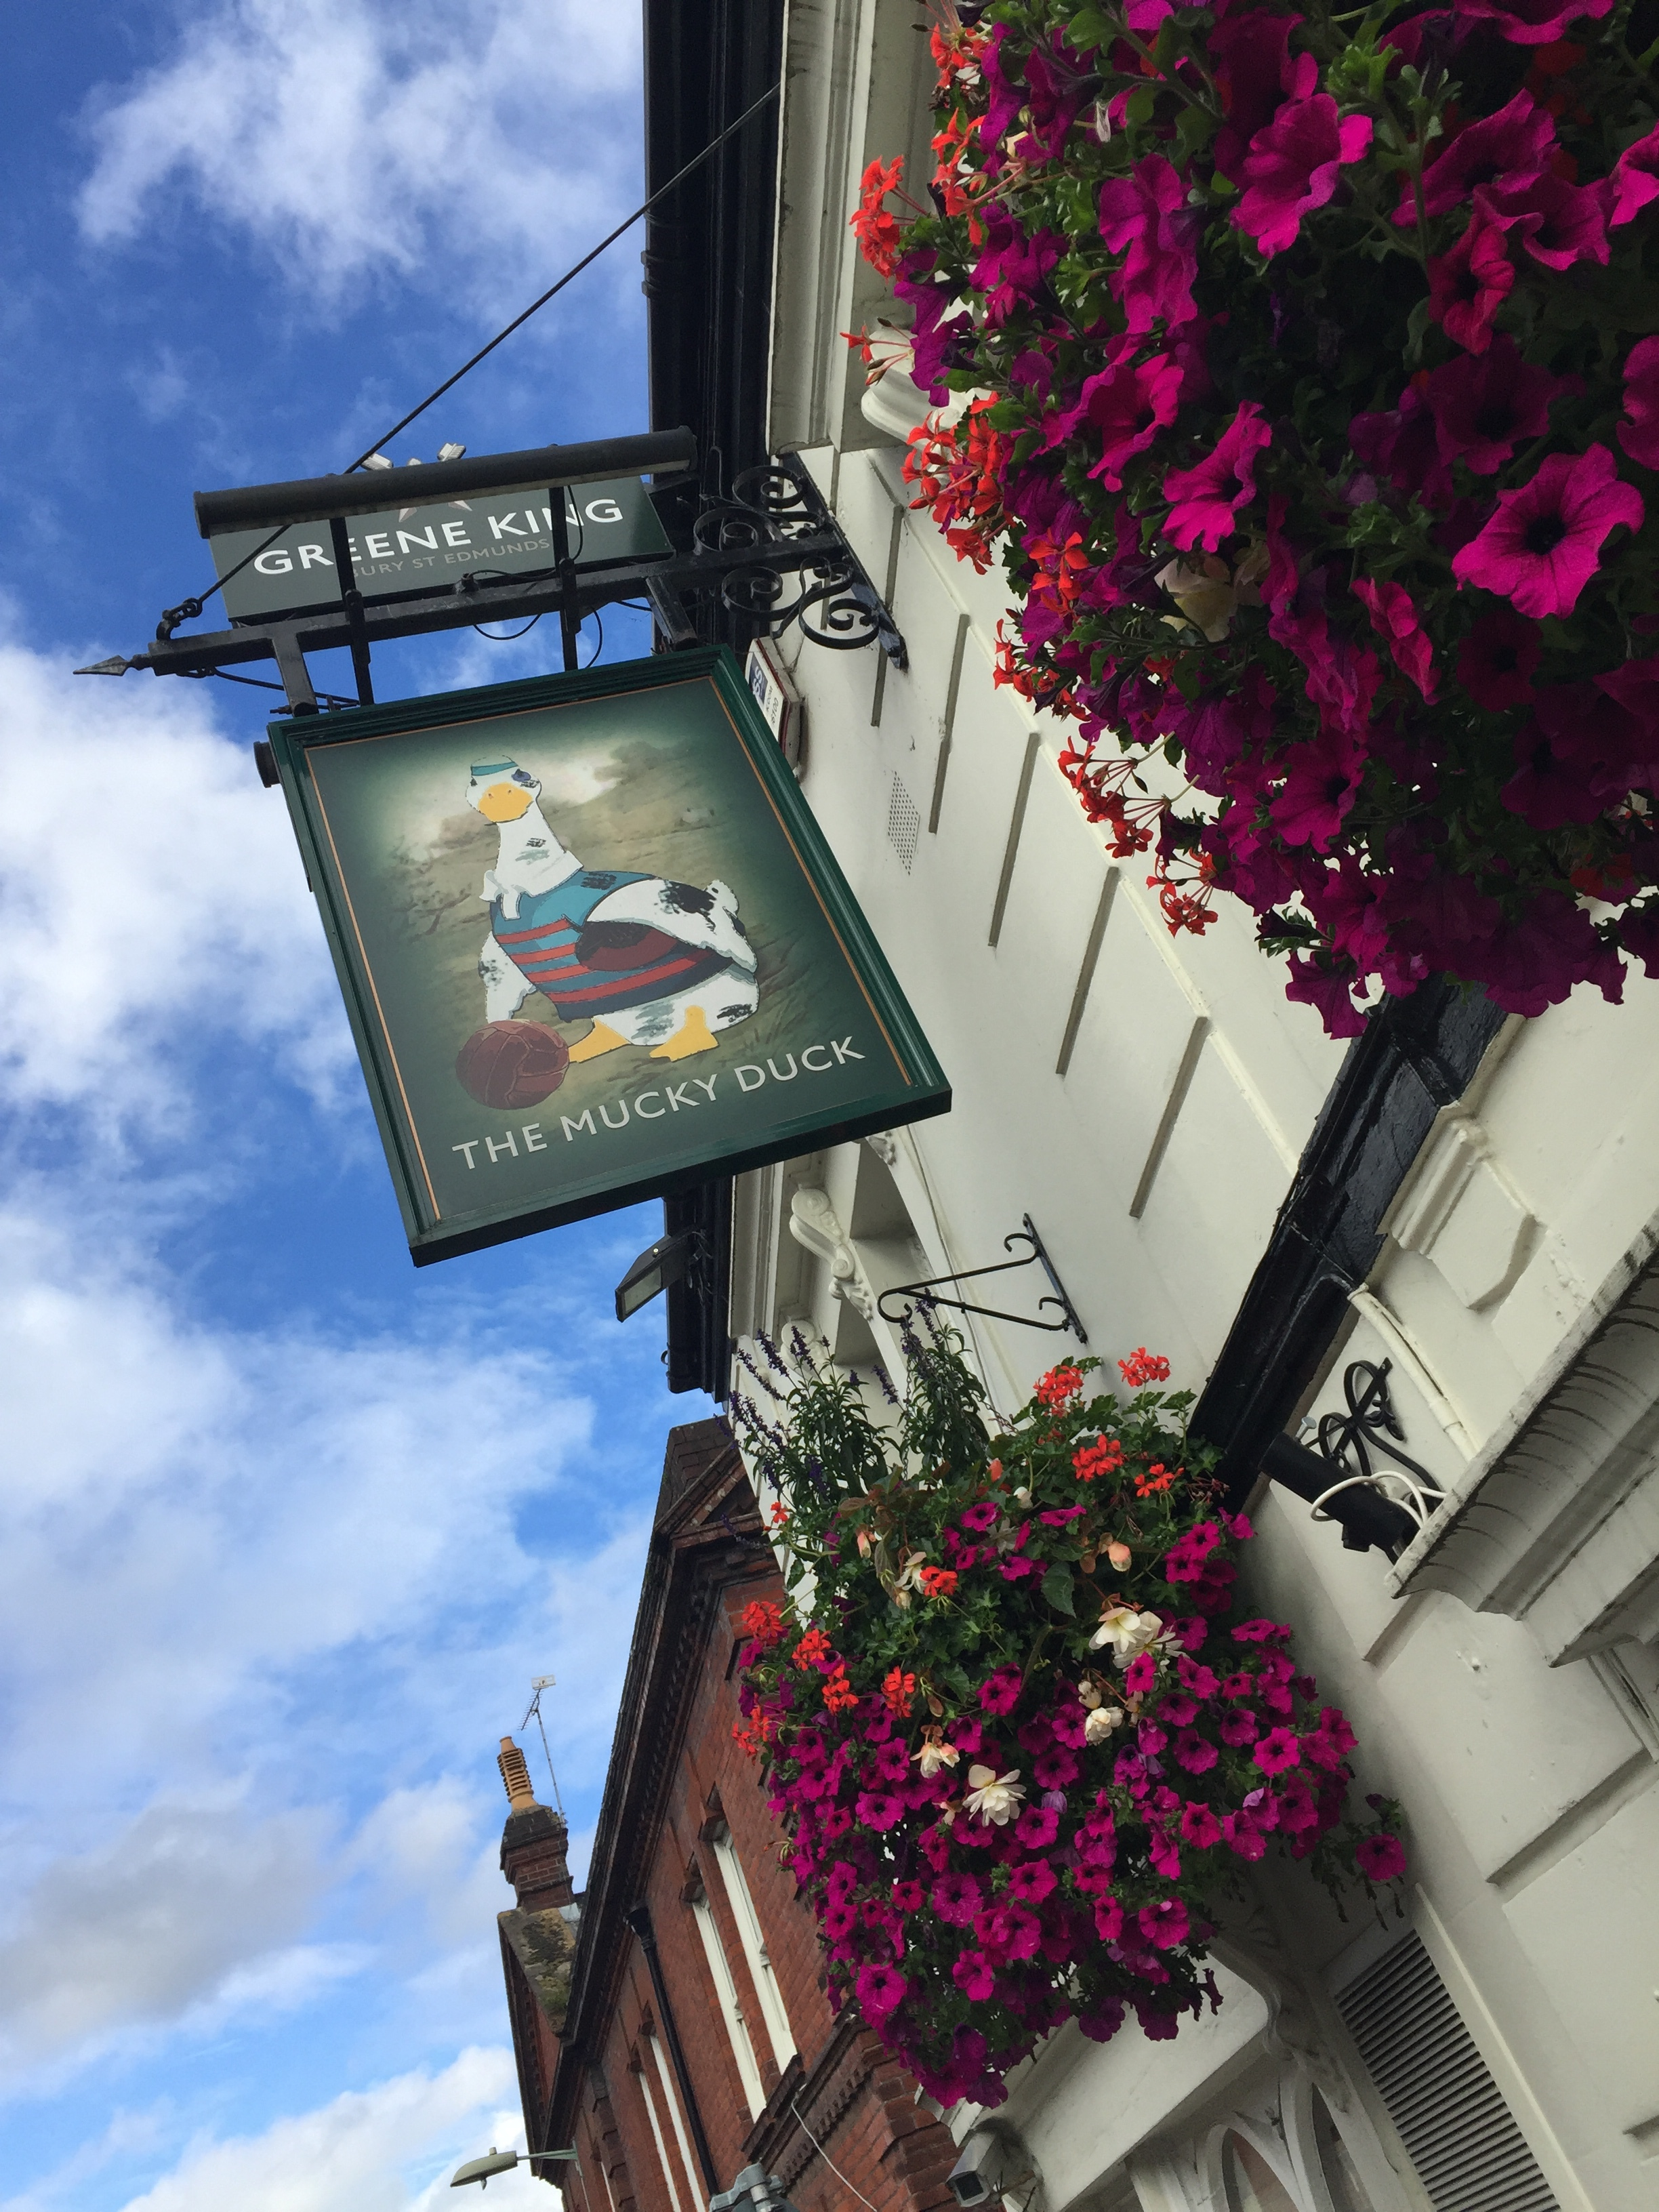 The Mucky Duck sign